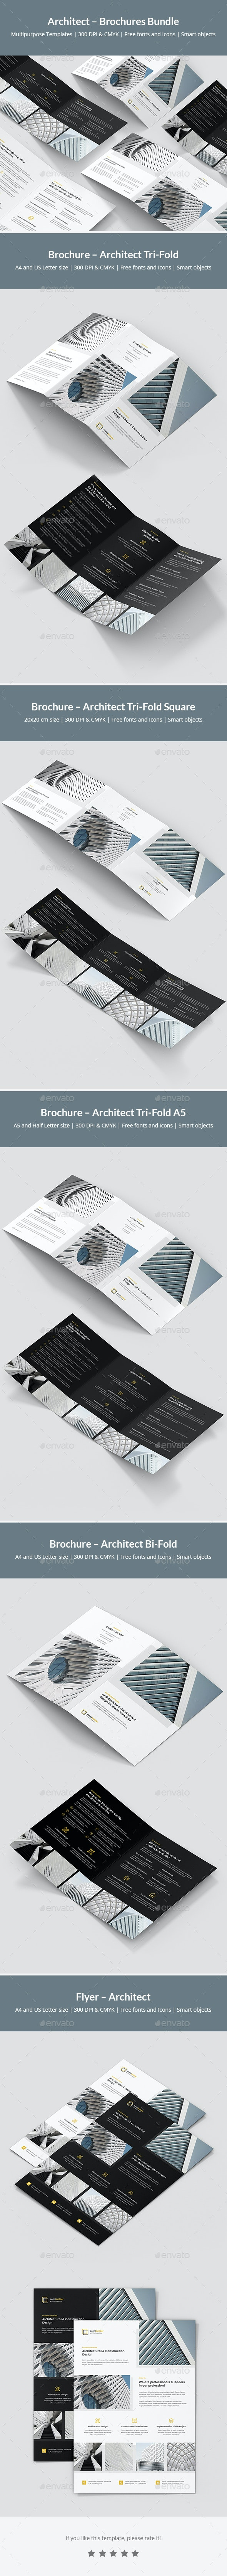 Architect – Brochures Bundle Print Templates 5 in 1 - Corporate Brochures